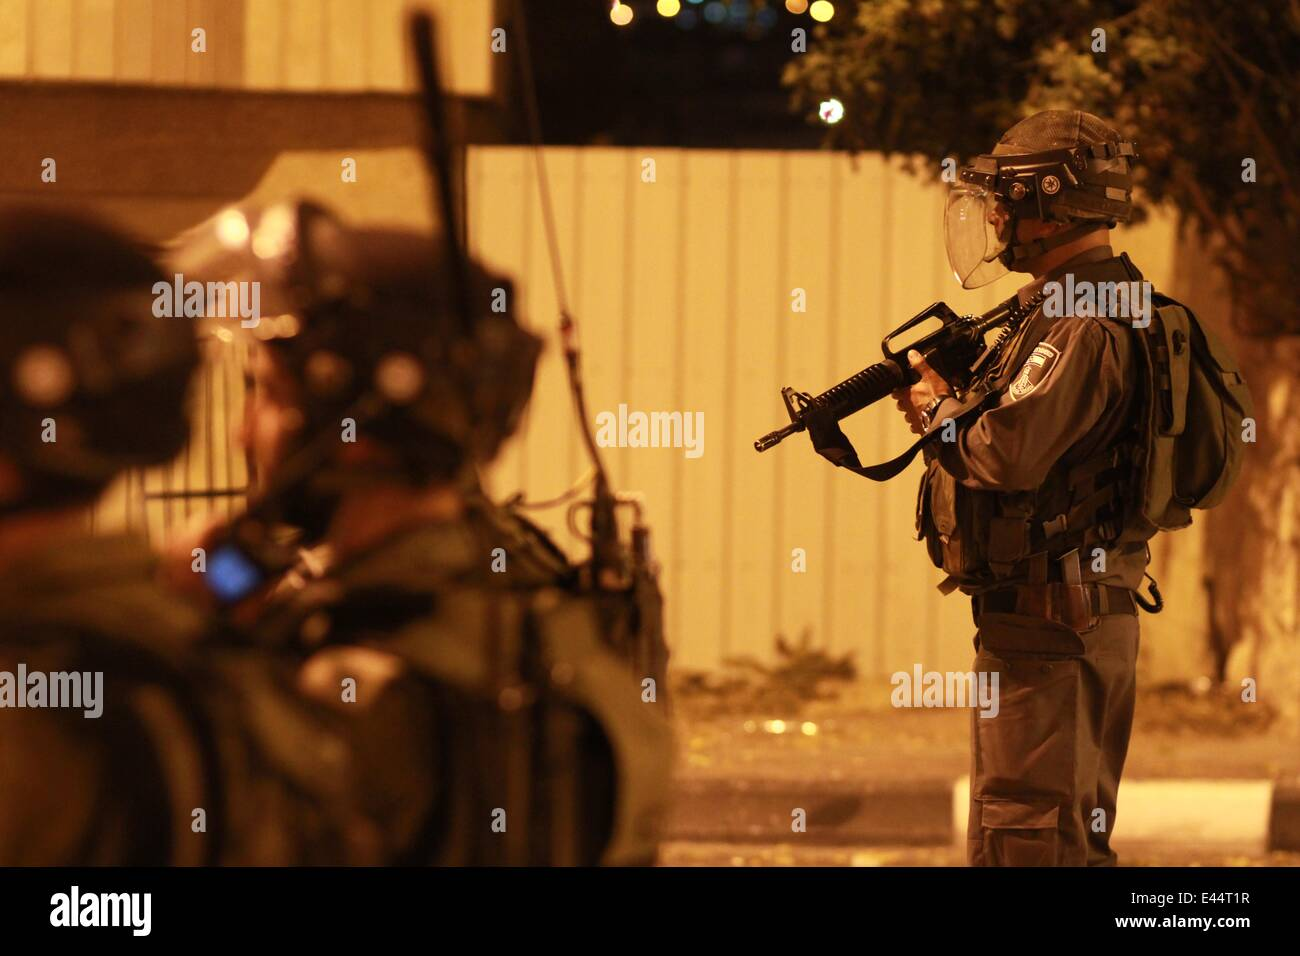 Bethlehem. 2nd July, 2014. Israeli soldiers take positions during clashes with Palestinian youths near Rachel's - Stock Image